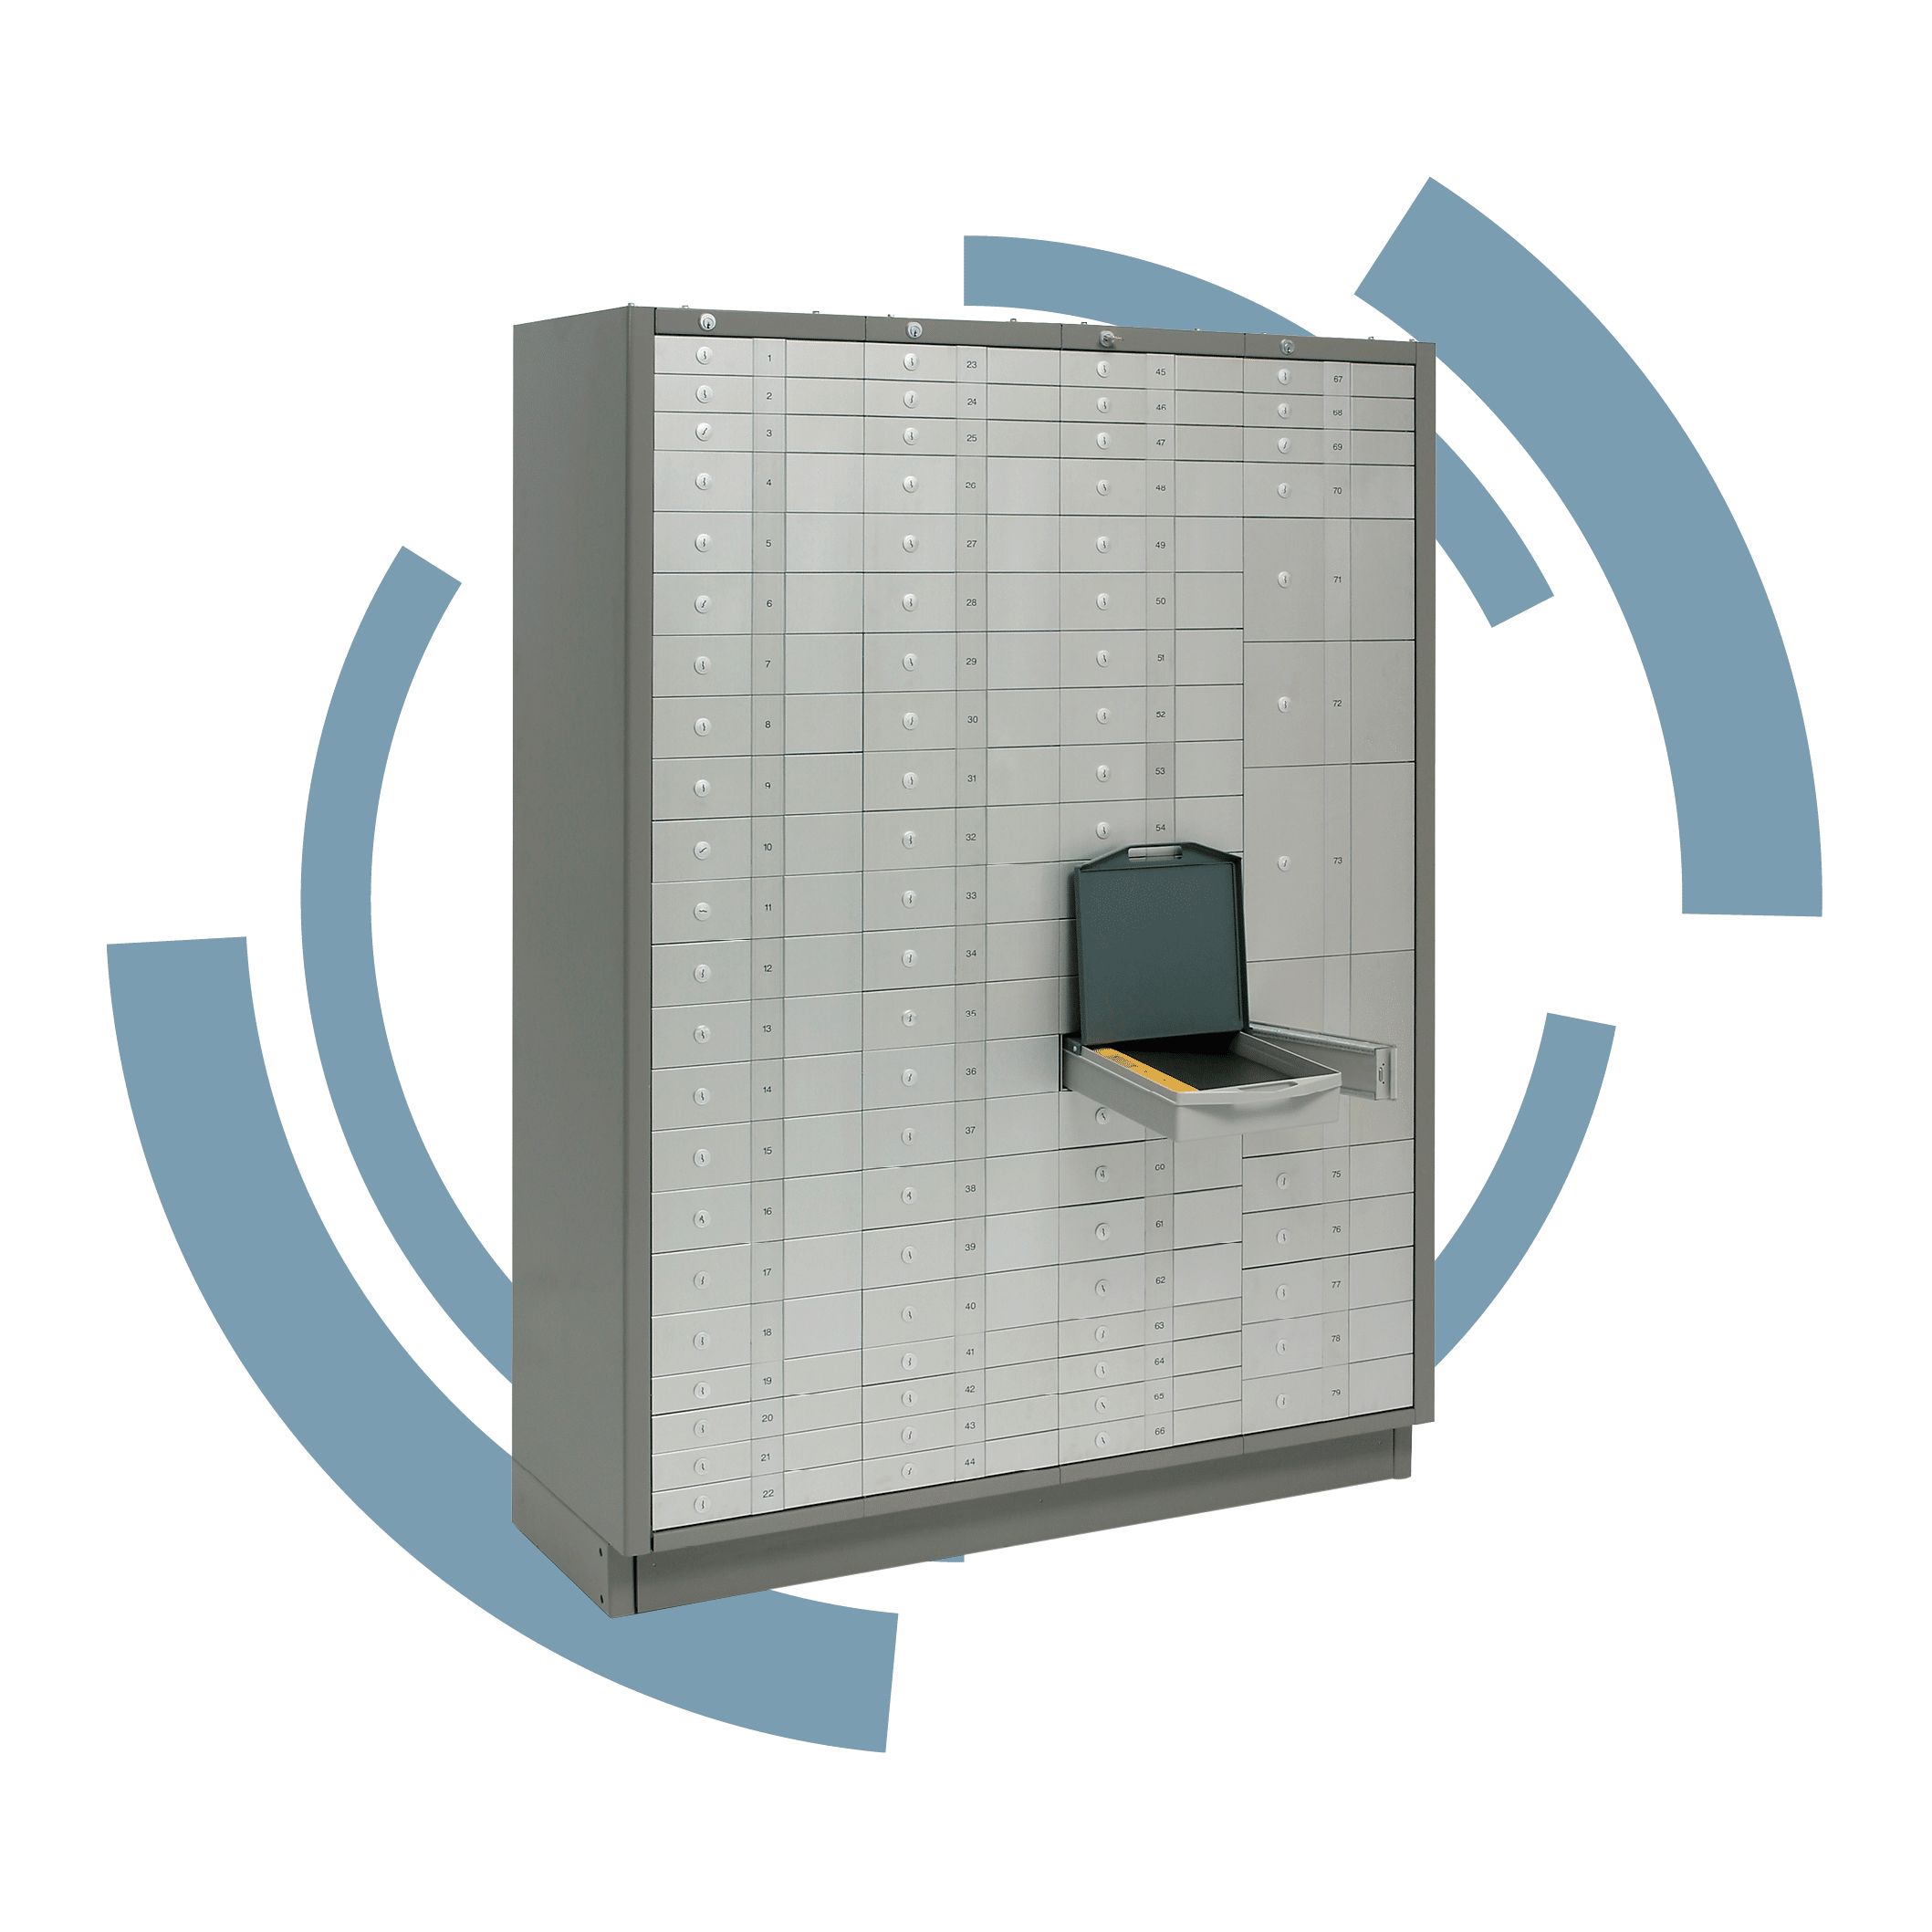 Associataced Security-safe Deposit- Vaults safe